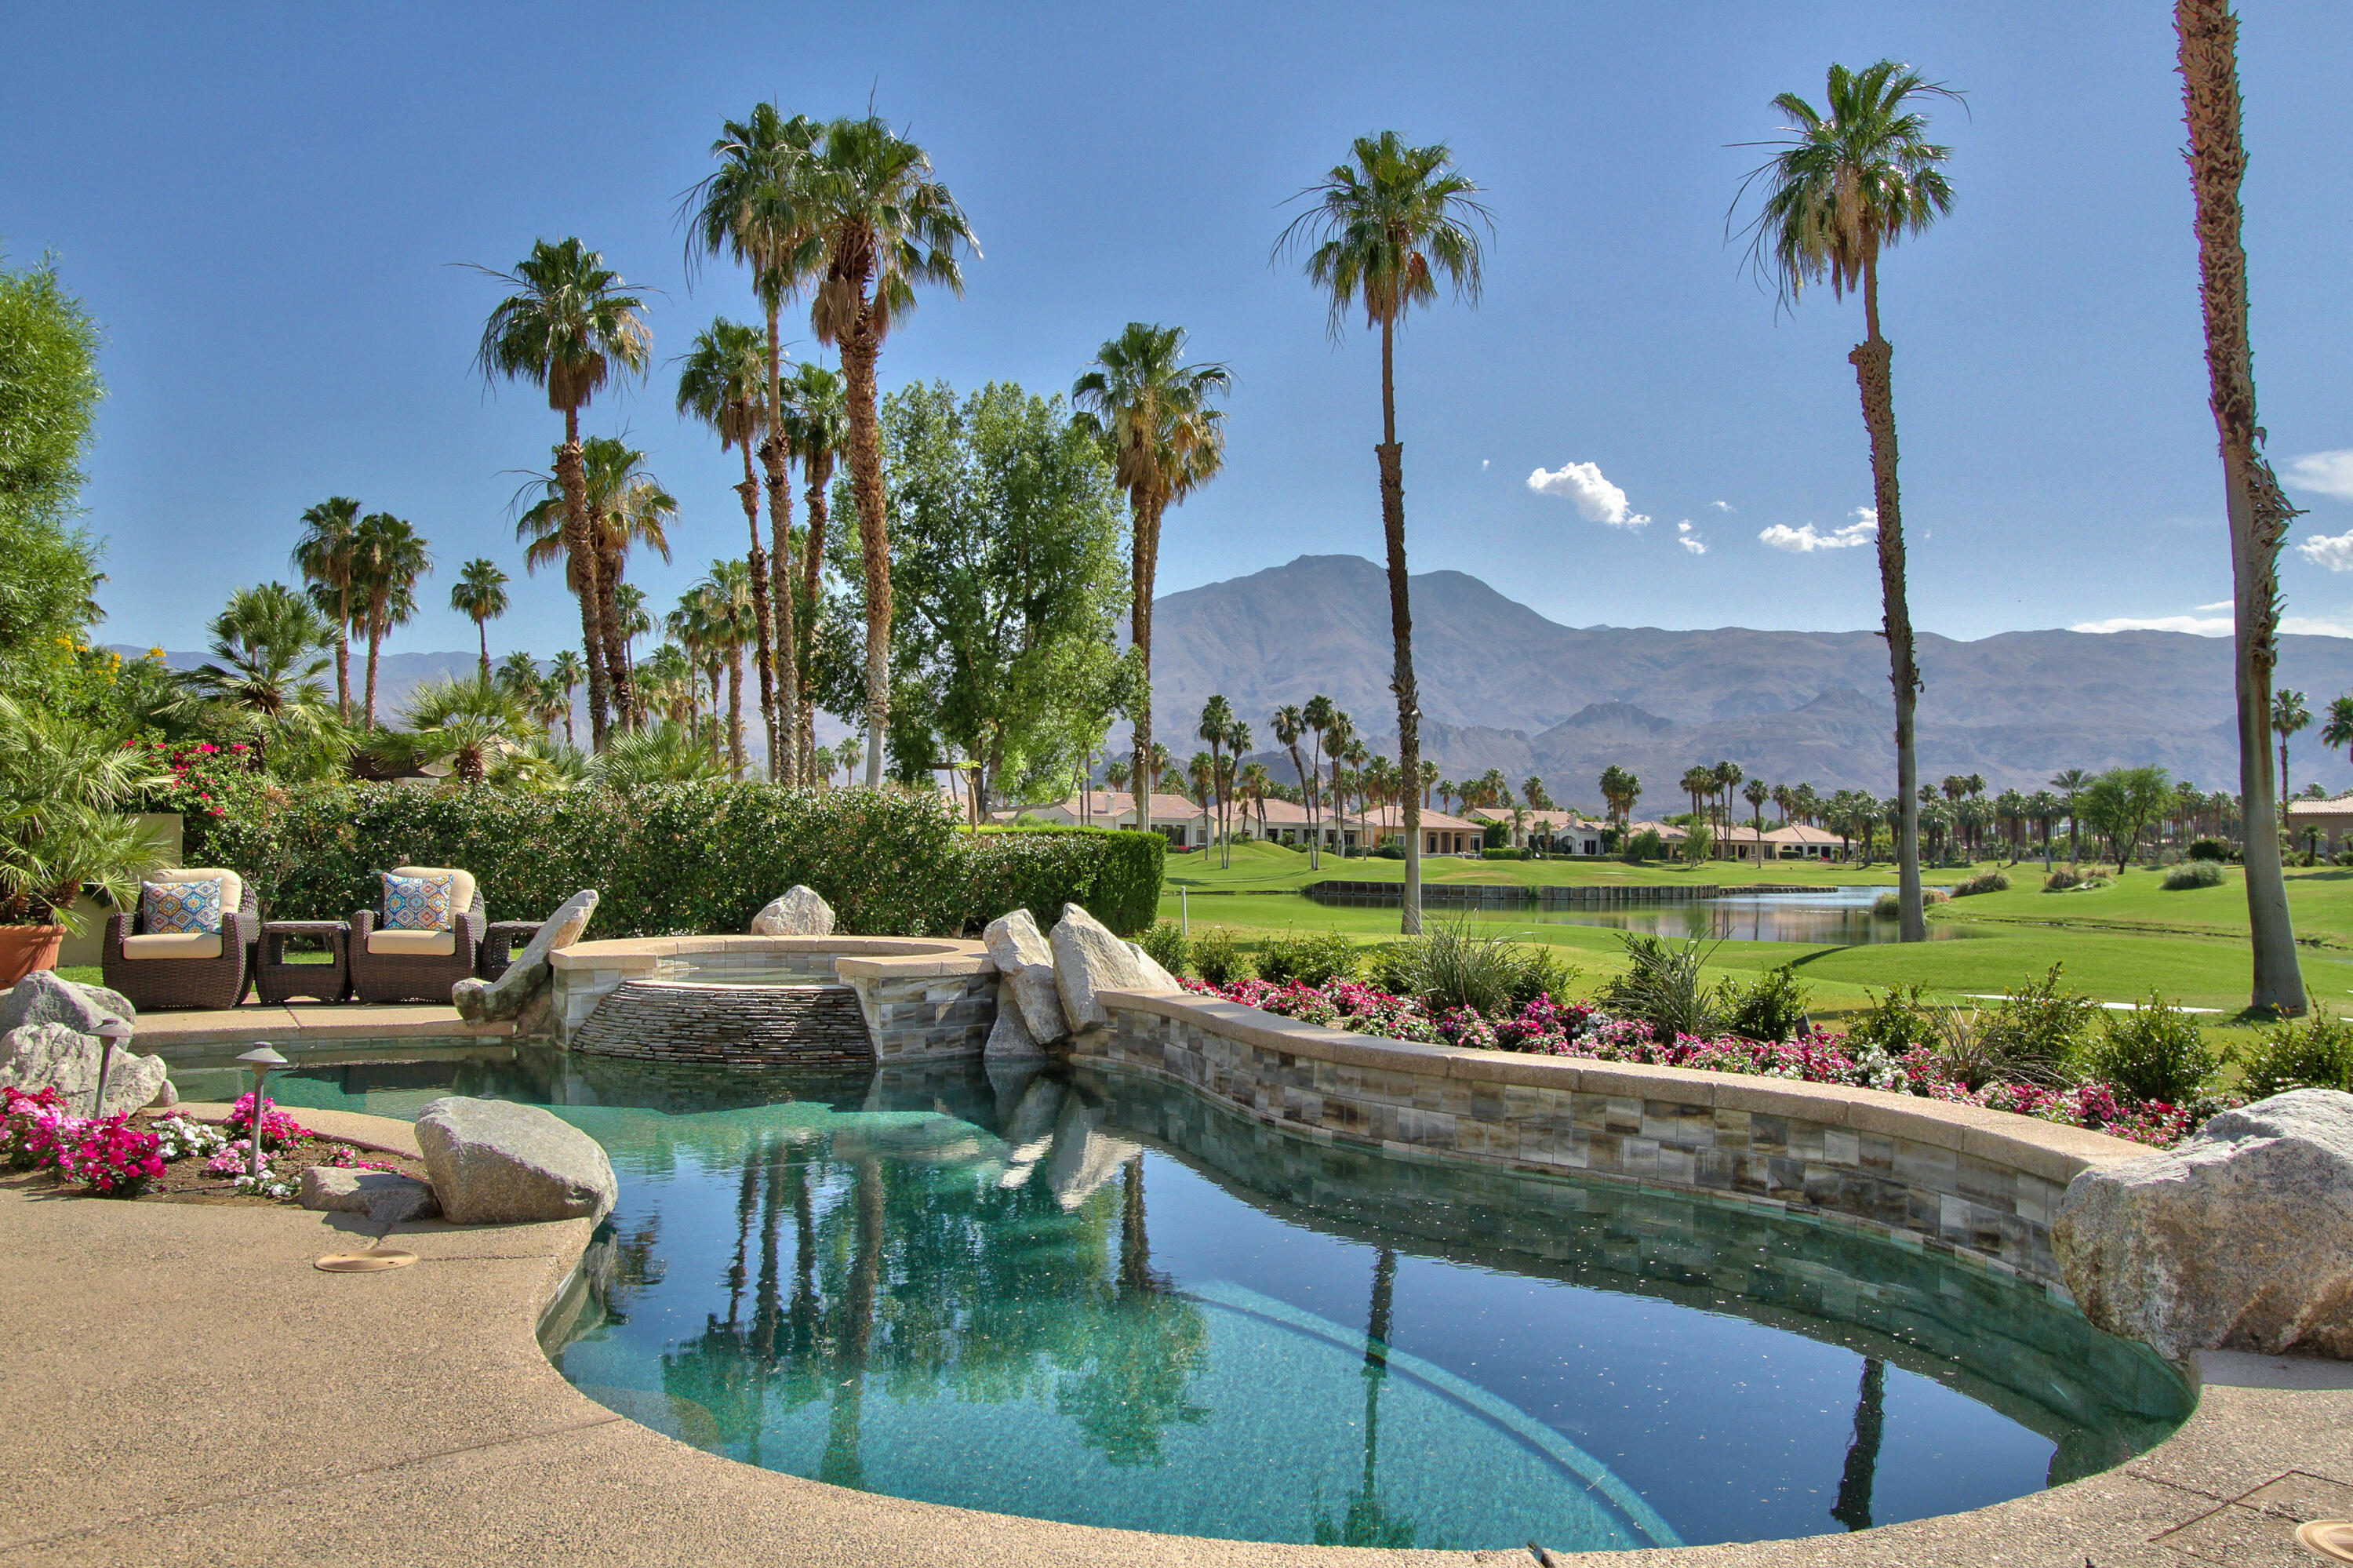 Mountains, mountains, and more mountain views! Panoramic  mountain, fairway, lake and island green views abound on this gem located within the Legends gate at beautiful PGA West. The home is situated on the semi-private world famous Jack Nicklaus golf course, away from incoming balls, and has four 4 bedrooms plus bonus room for family enjoyment. Newly remodeled, this home boasts fresh paint interior and exterior, has new TVs, new LED lights, new furniture and bedding, and new ceiling fans. House has two master suites in addition to a two-room detached Casita. Enjoy oversized backyard with large covered patio, overlooking lagoon pool and spa. Also retreat to the covered patio and listen to the beautiful waterfall feature. The sunsets here are absolutely spectacular! Low HOA's. This home is furnished per inventory.  Call now for a private showing!